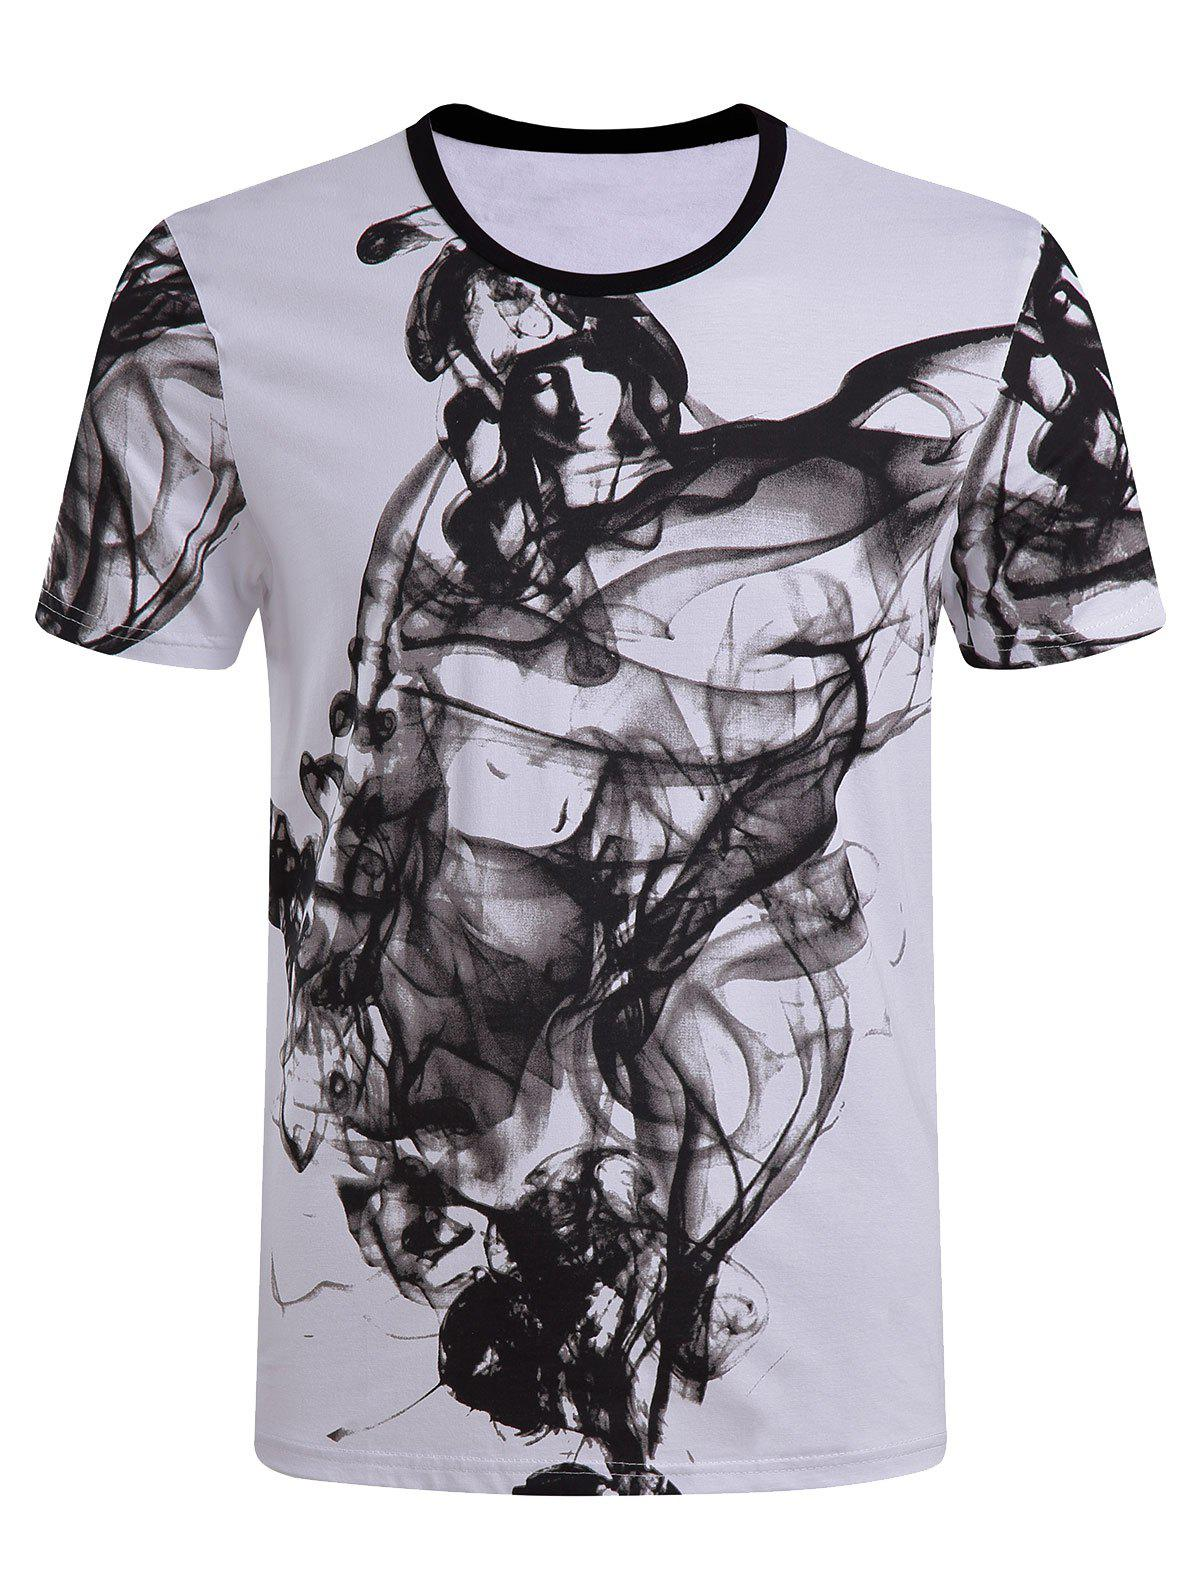 Men's Casual Short Sleeves Painting Round Collar T-Shirt - WHITE 2XL